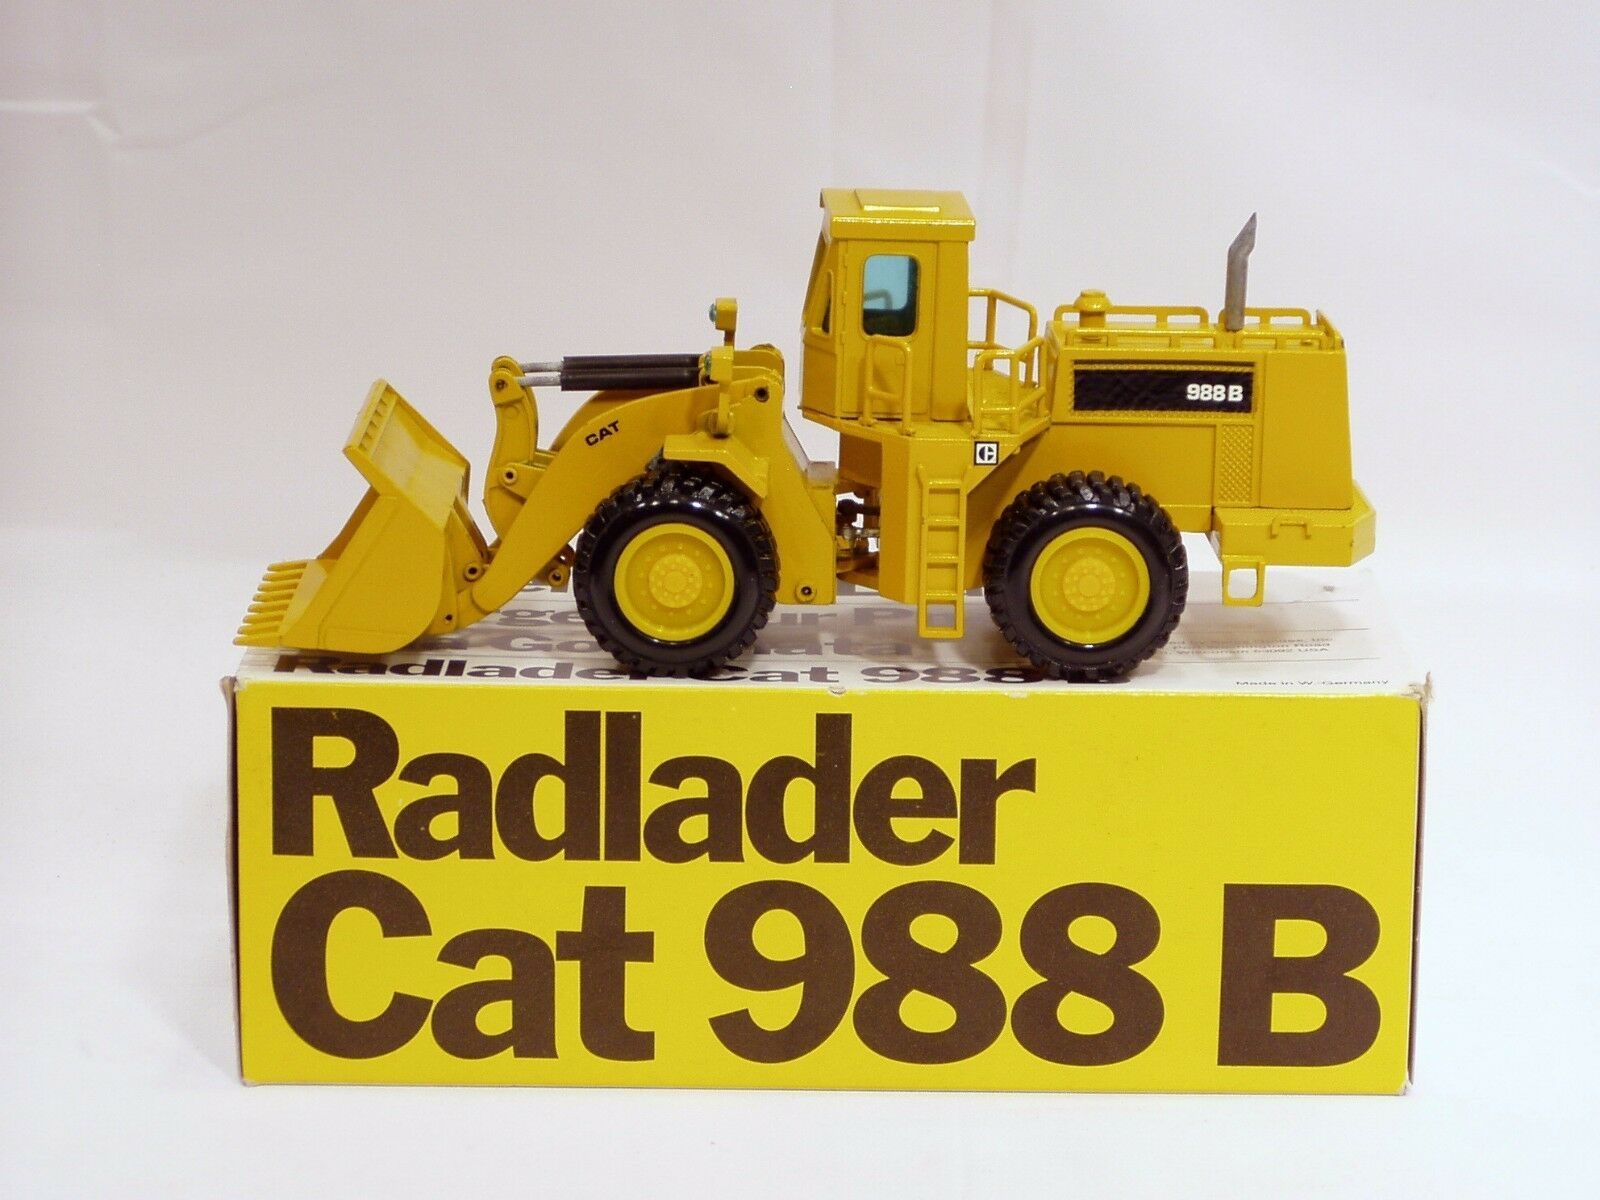 Caterpillar 988B chargeuse-O C-B S - 1 50 - NZG  167 - N. Comme neuf IN BOX